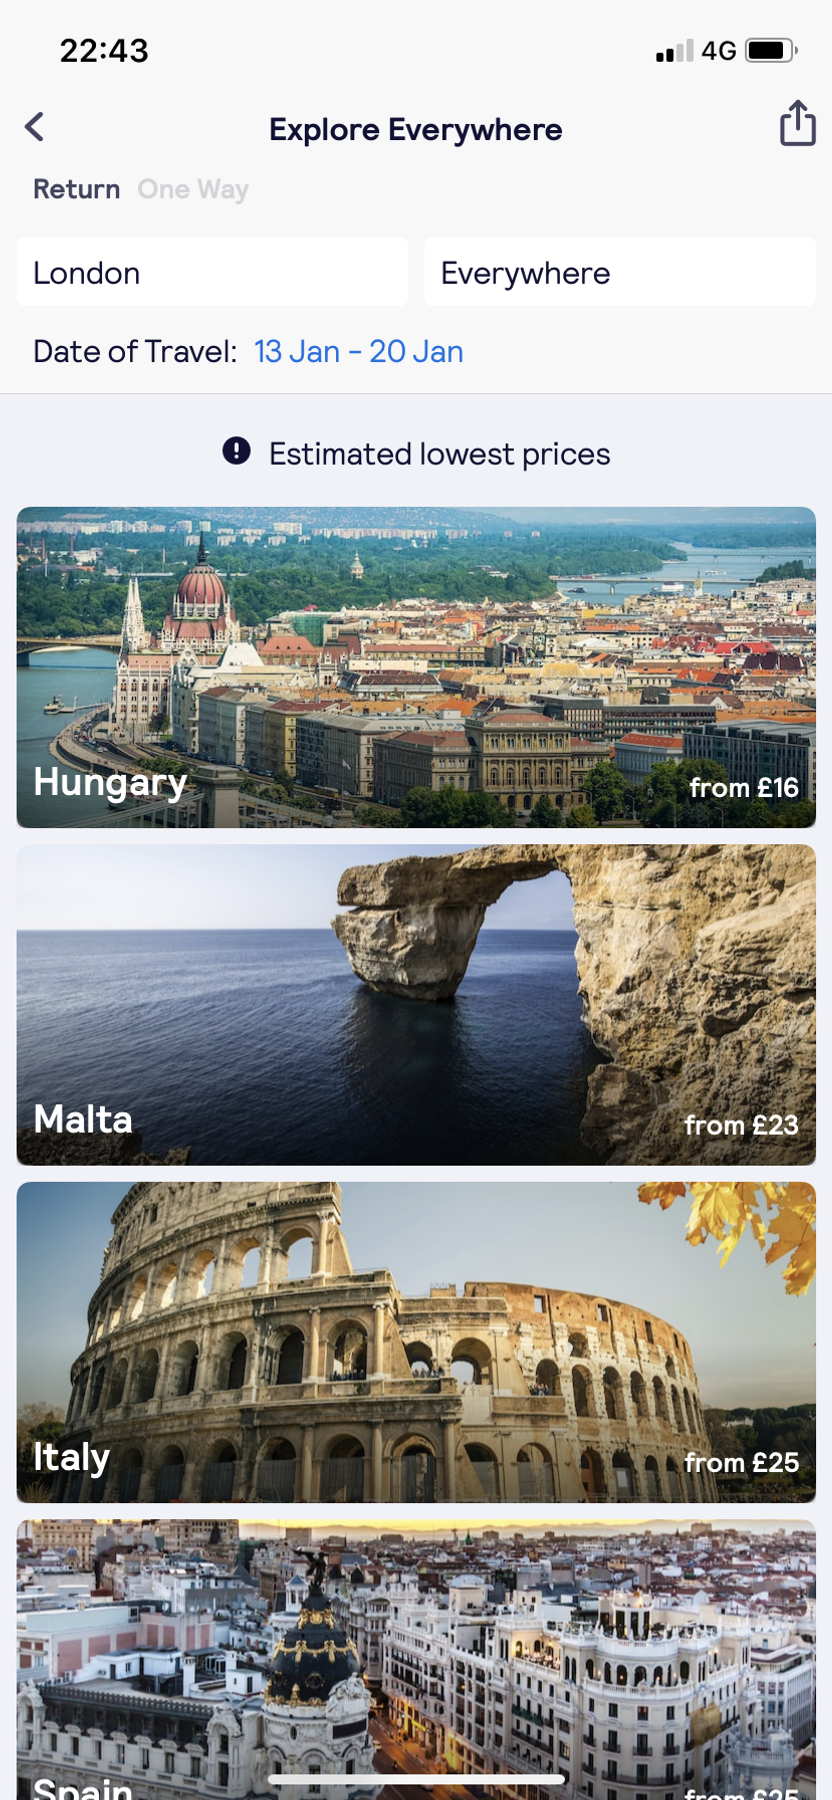 Search 'Everywhere' to find the lowest prices across the world.